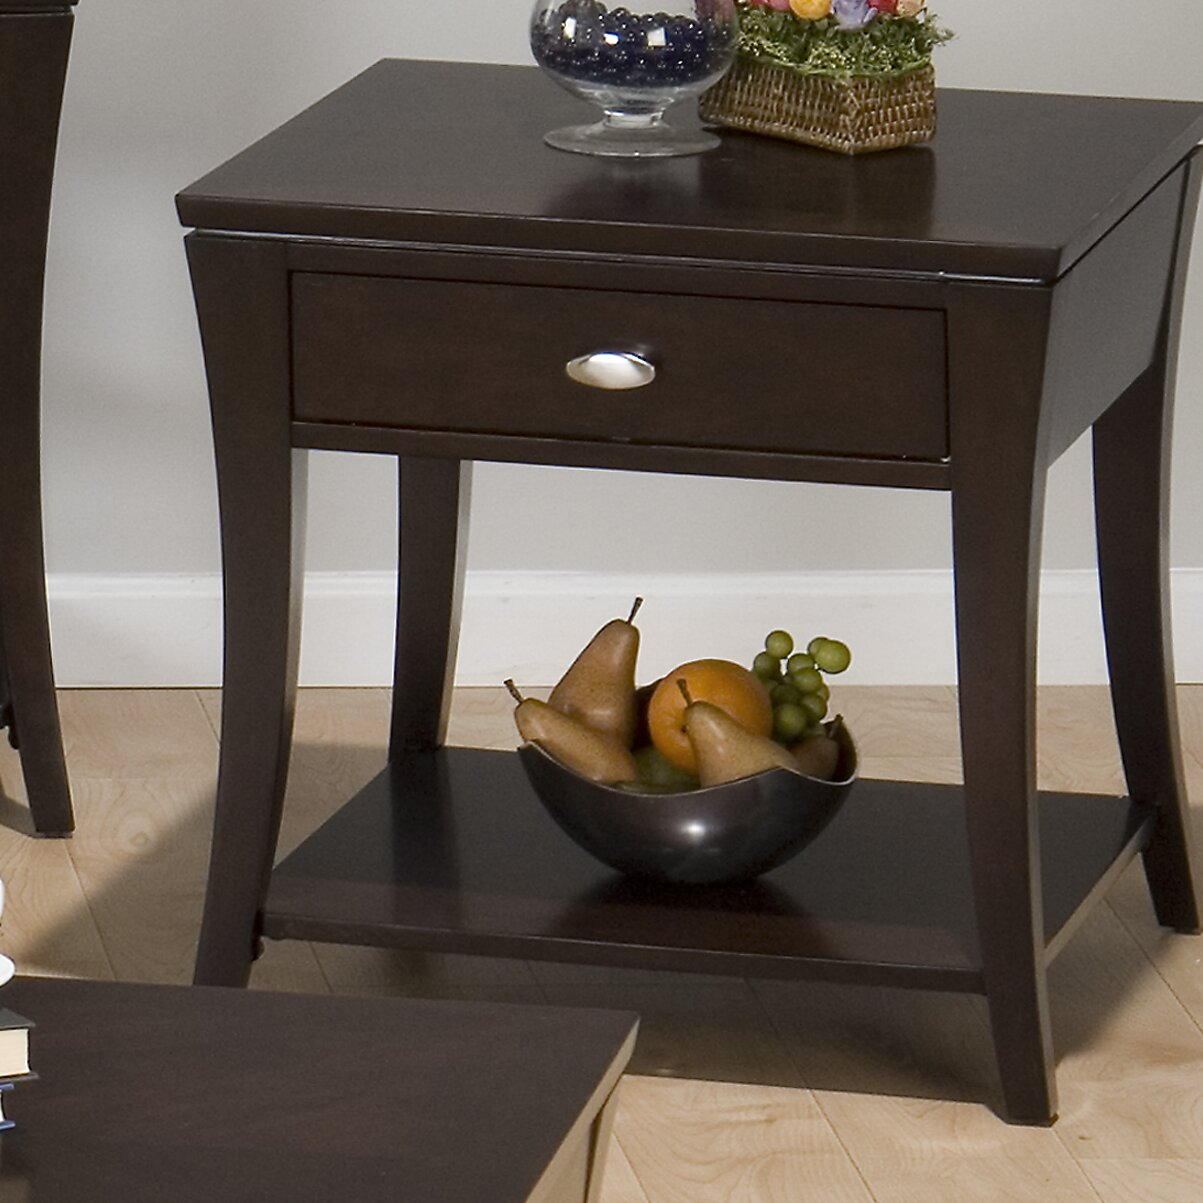 Jofran double header mobile coffee table set reviews for Table header